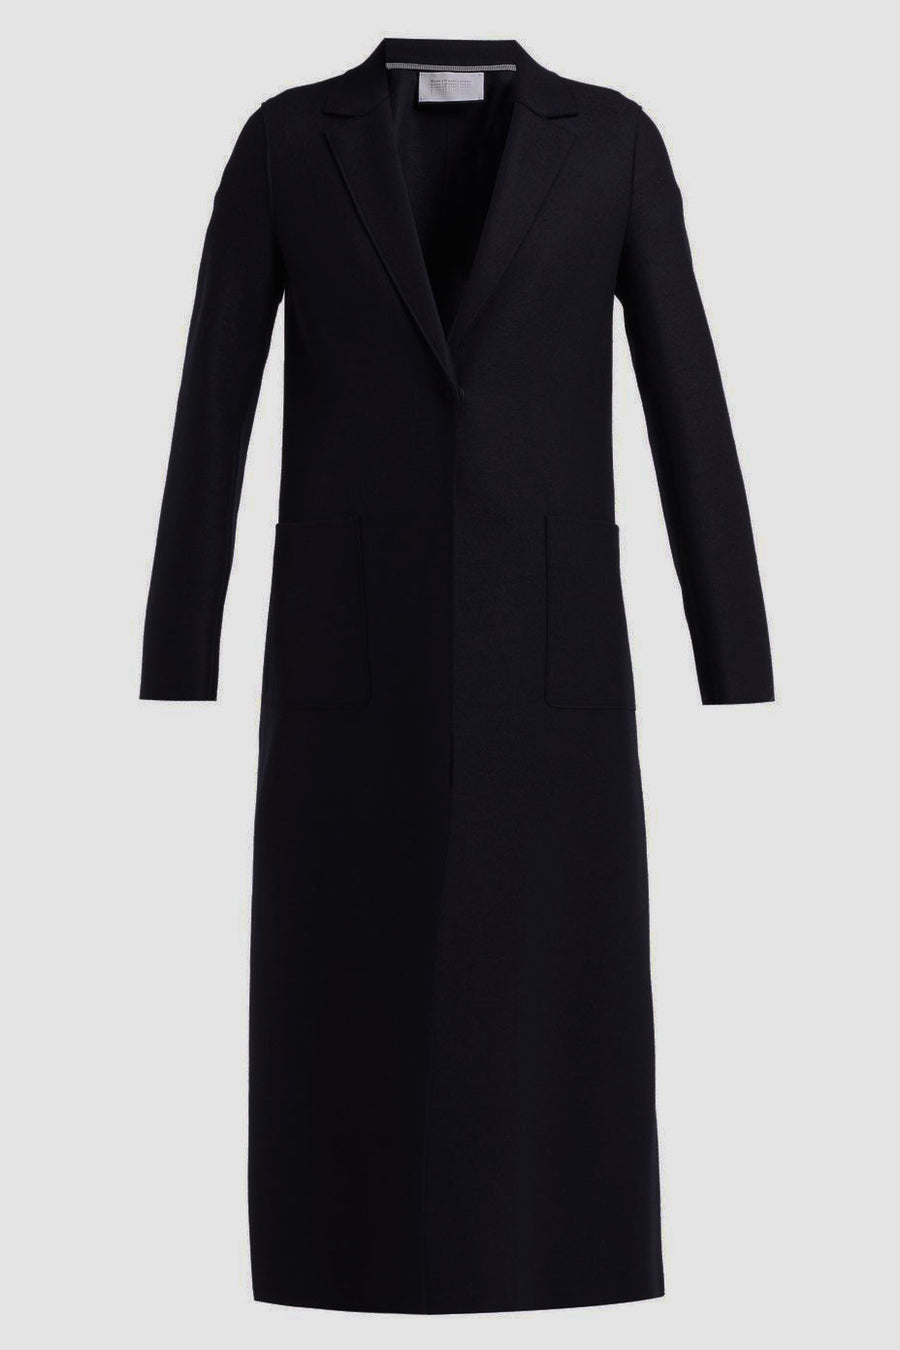 Long Vented Coat Light Pressed Wool - Black - Pavilion